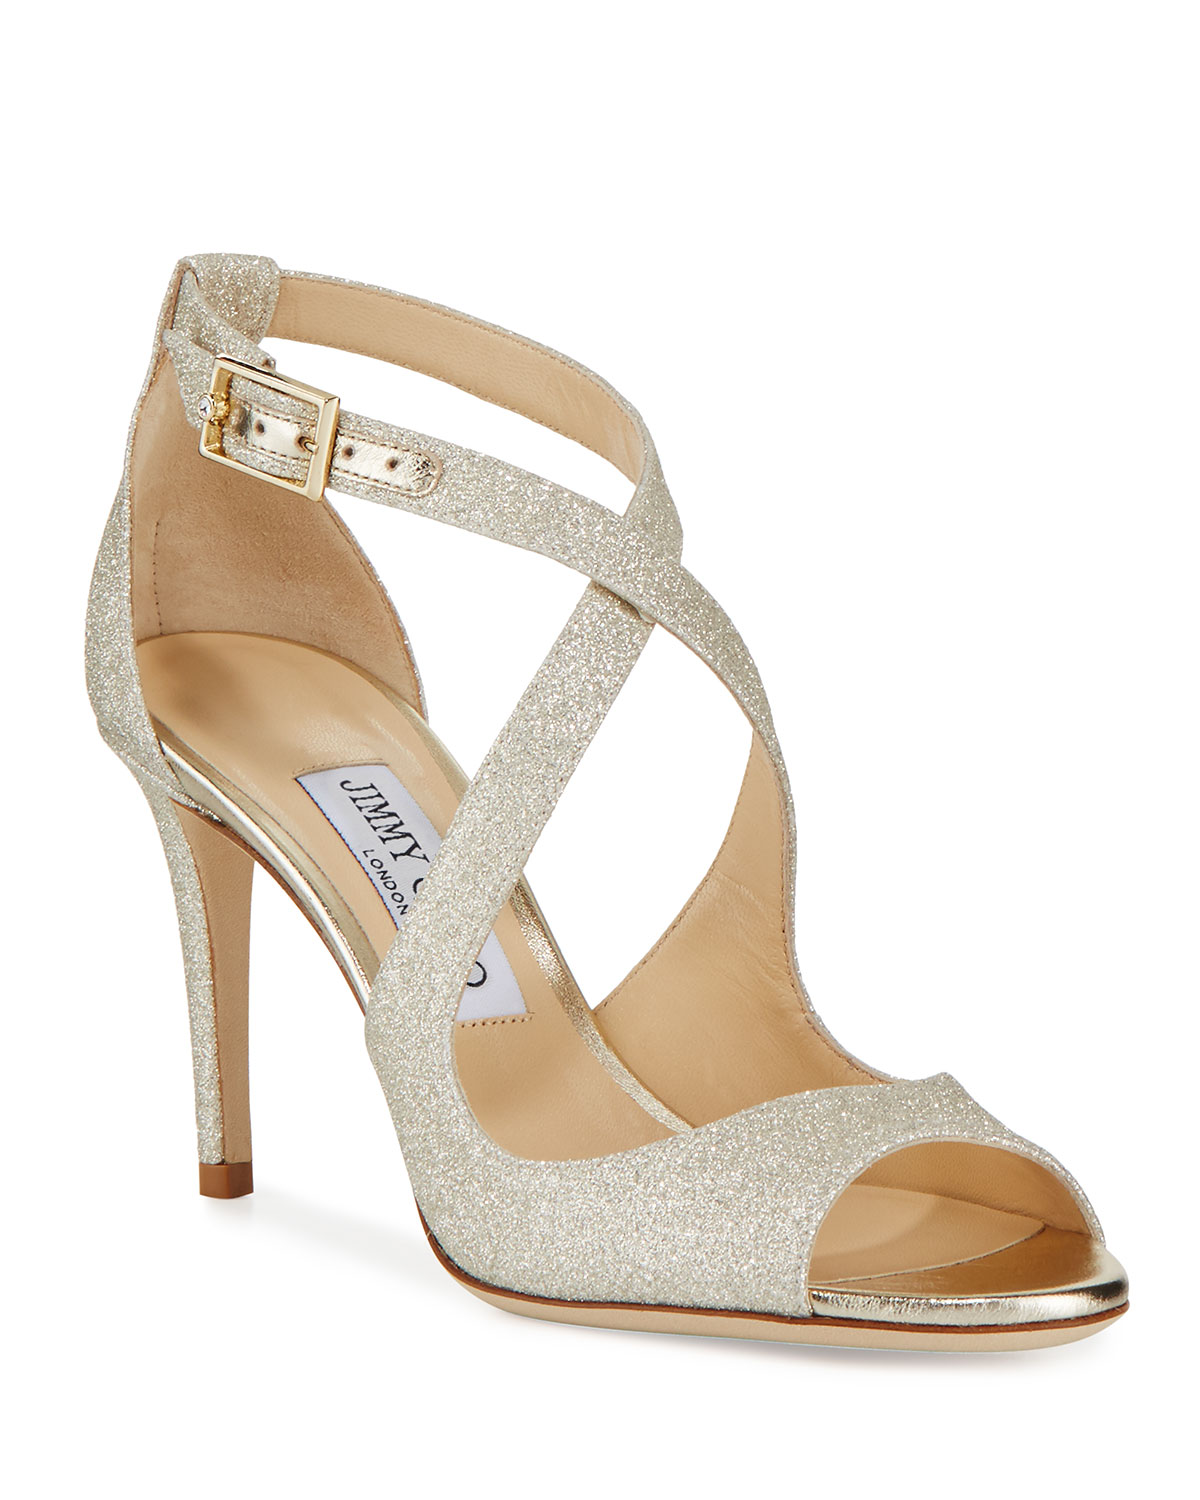 e62df1fa7c06 Jimmy Choo Emily Glitter Crisscross 85mm Sandals